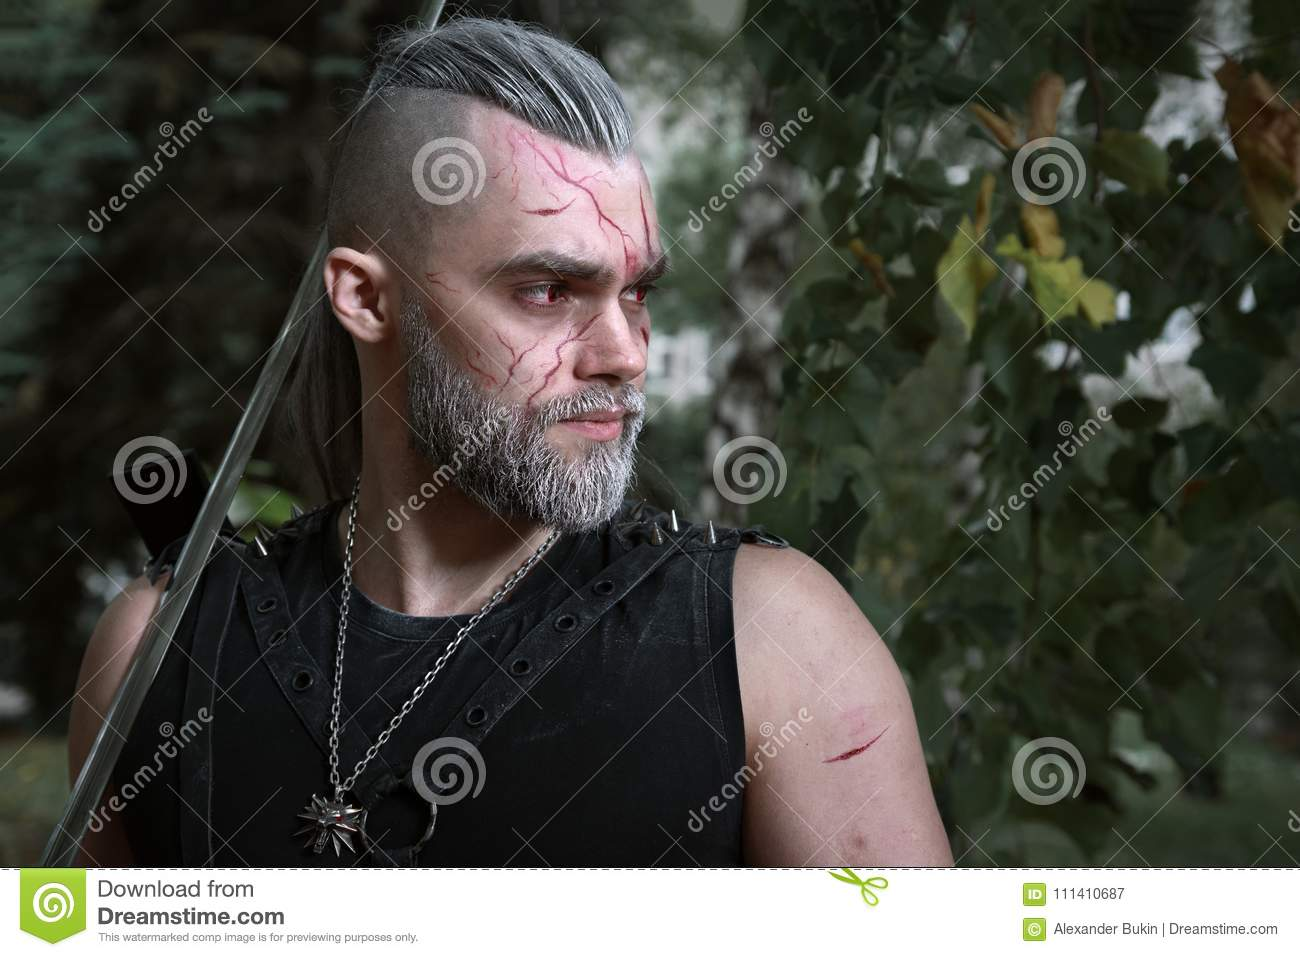 Cosplay, Dressed Like A Hero Geralt Of Rivia From The Game